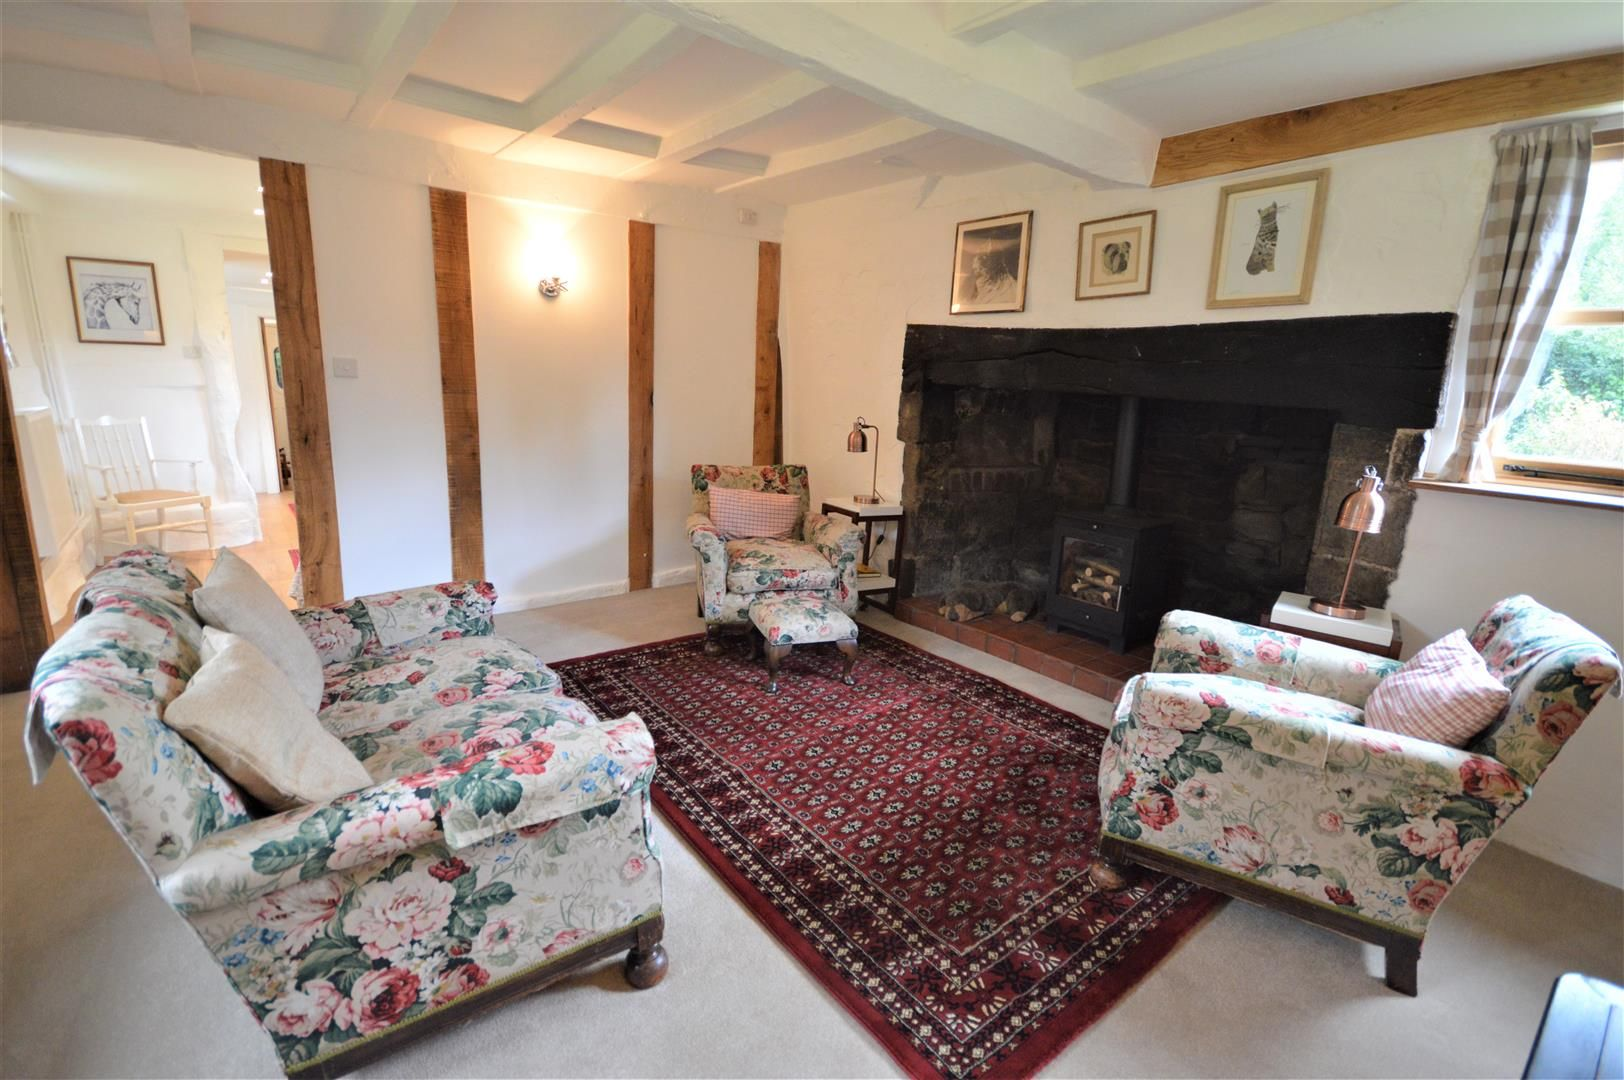 3 bed detached for sale in Eardisland  - Property Image 3